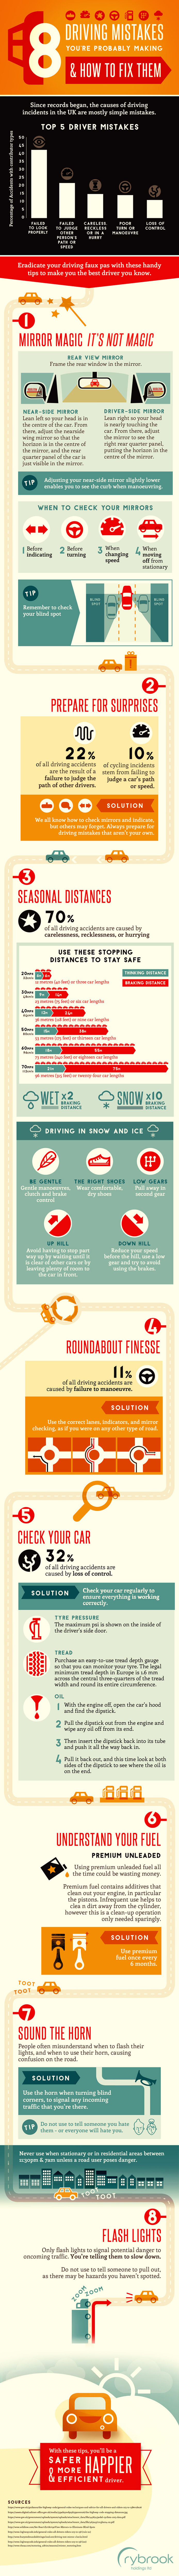 8 Driving Mistakes and How To Avoid Them